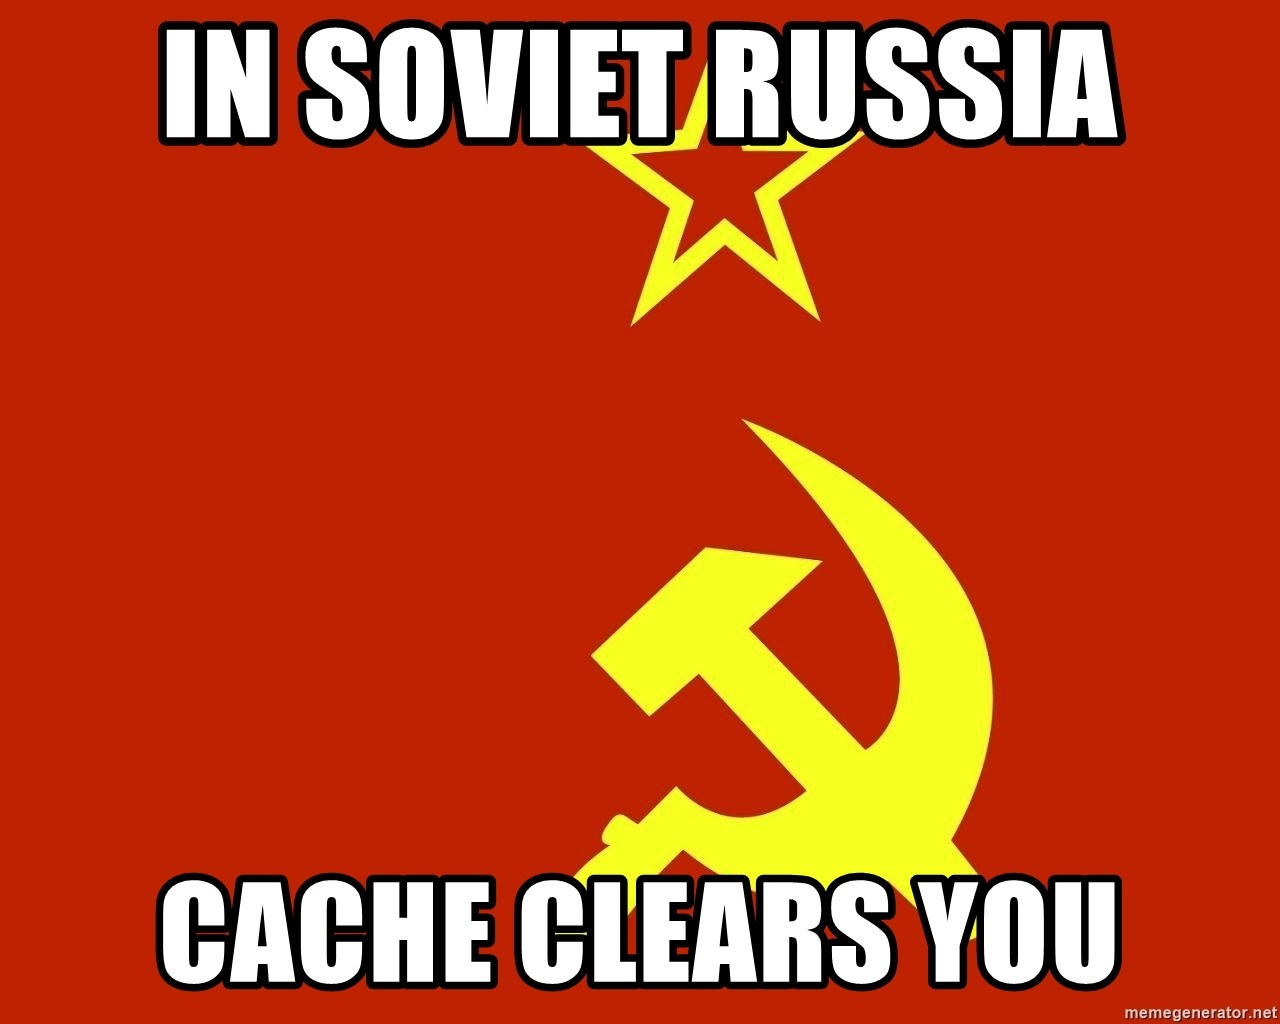 In Soviet Russia - In Soviet Russia Cache clears you